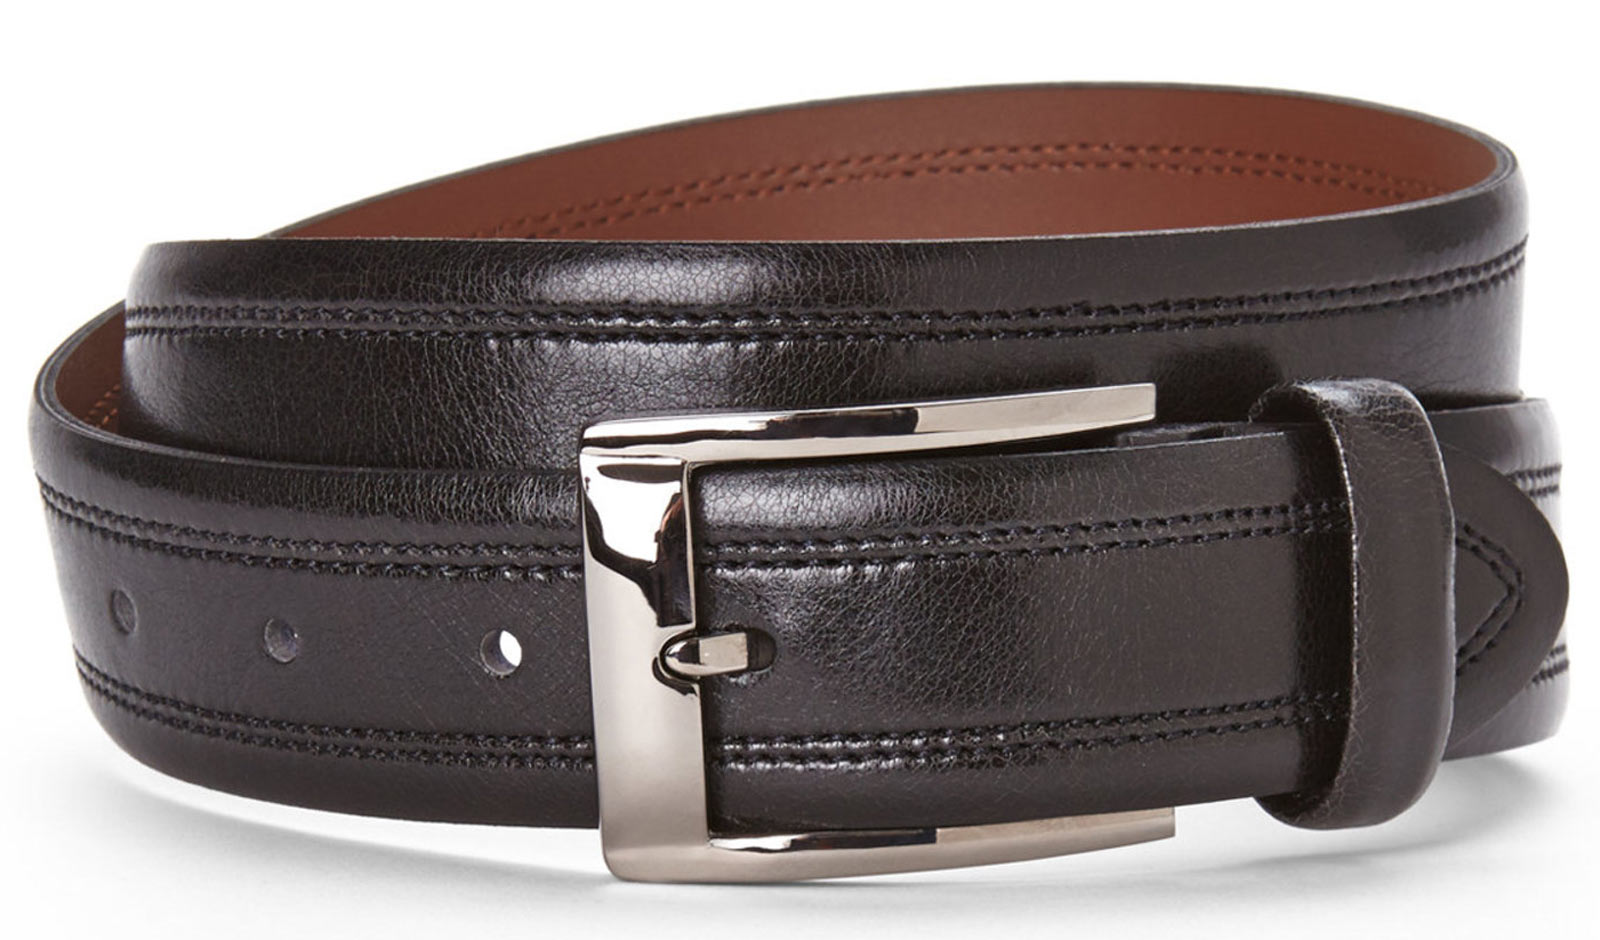 Bosca B03744 04 Men's Black Leather Belt Gumetal B